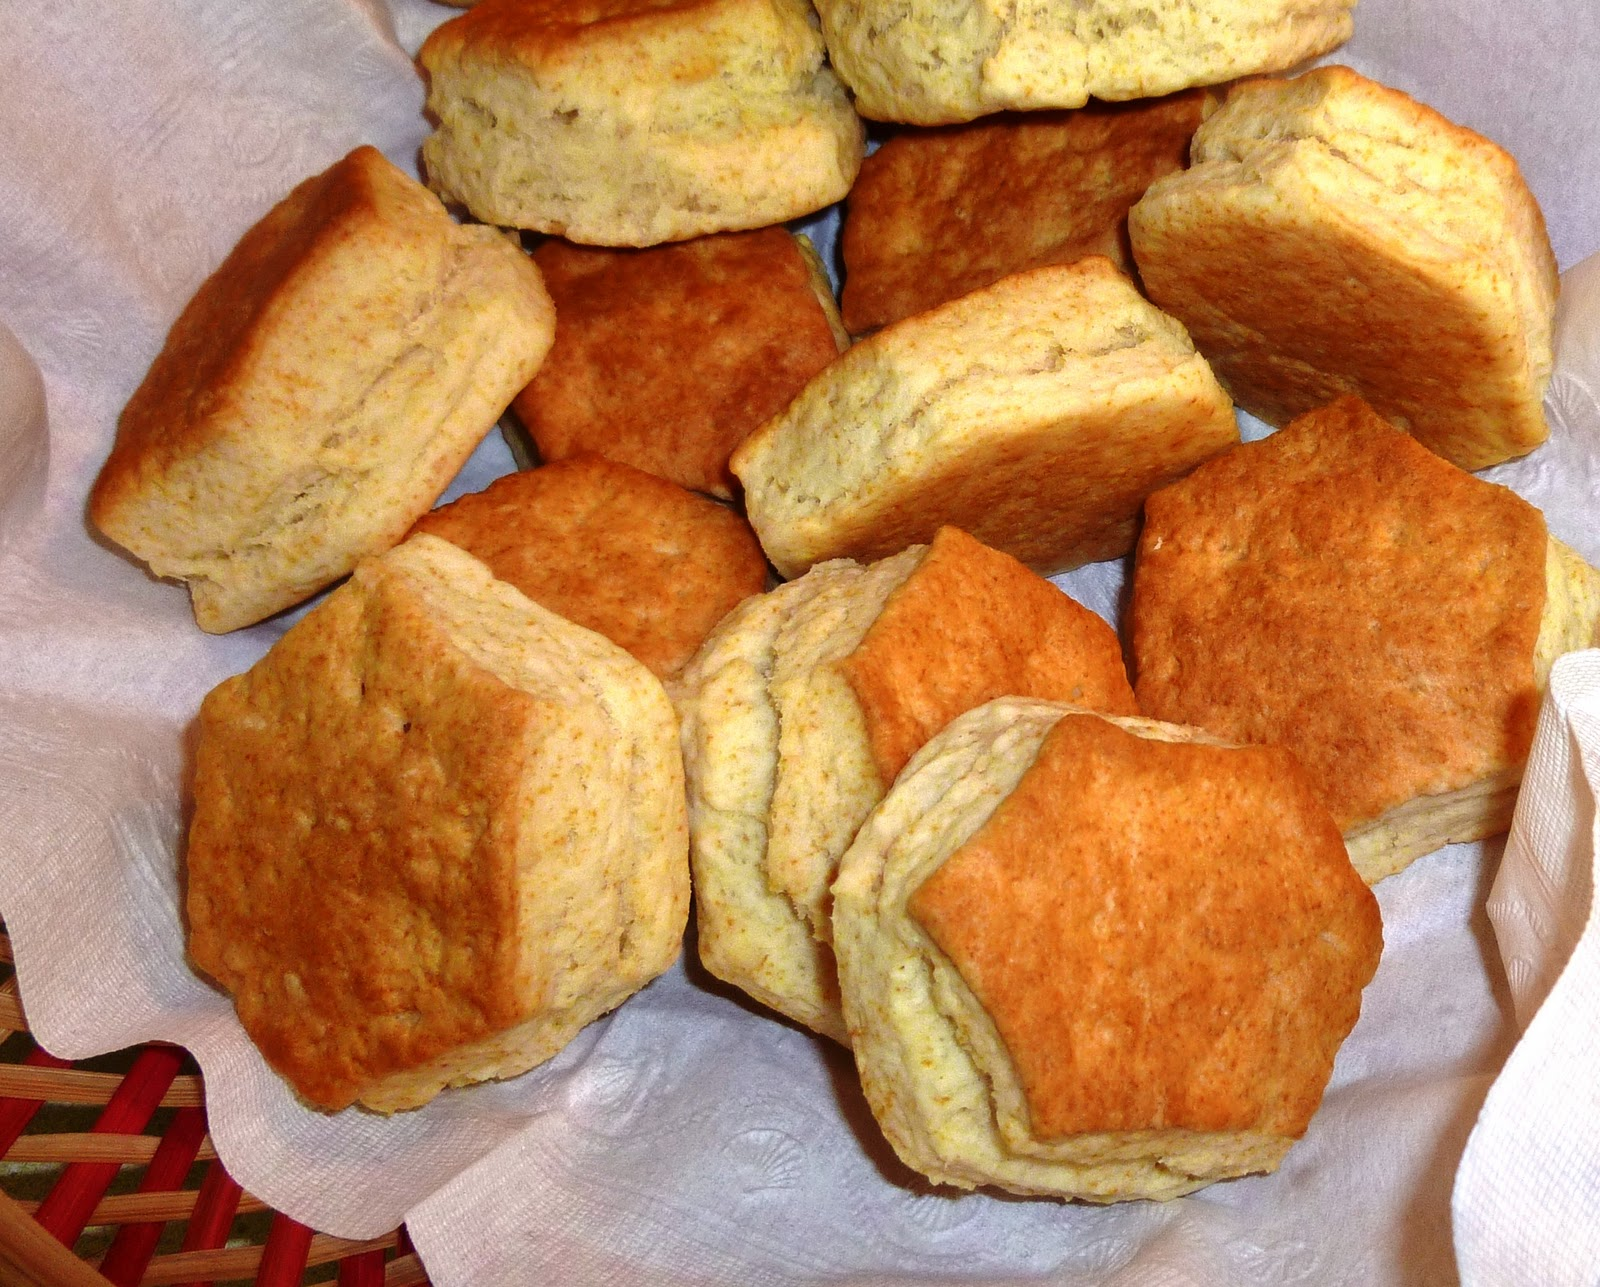 The Iowa Housewife: Never Fail Baking Powder Biscuits